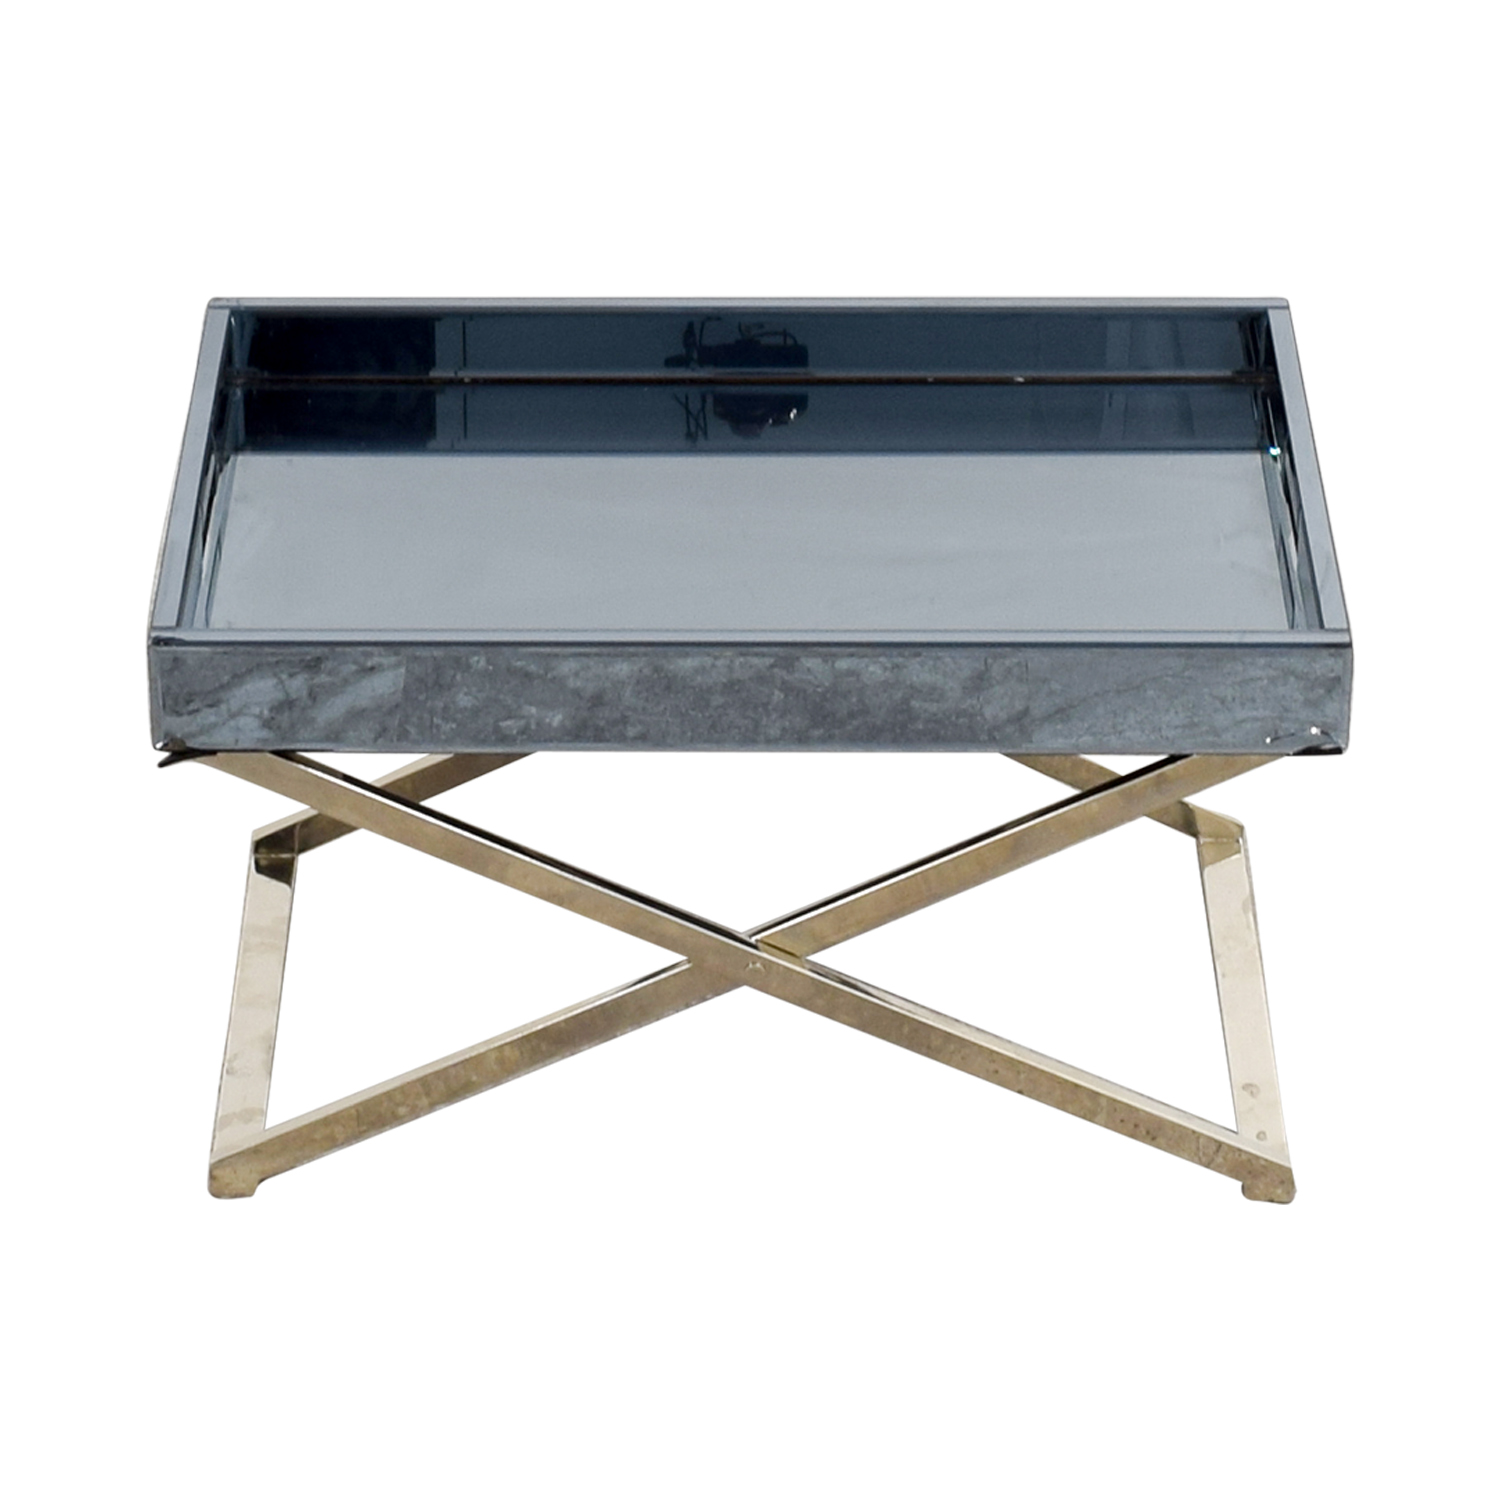 buy West Elm West Elm Butler Stand & Mirrored Tray online